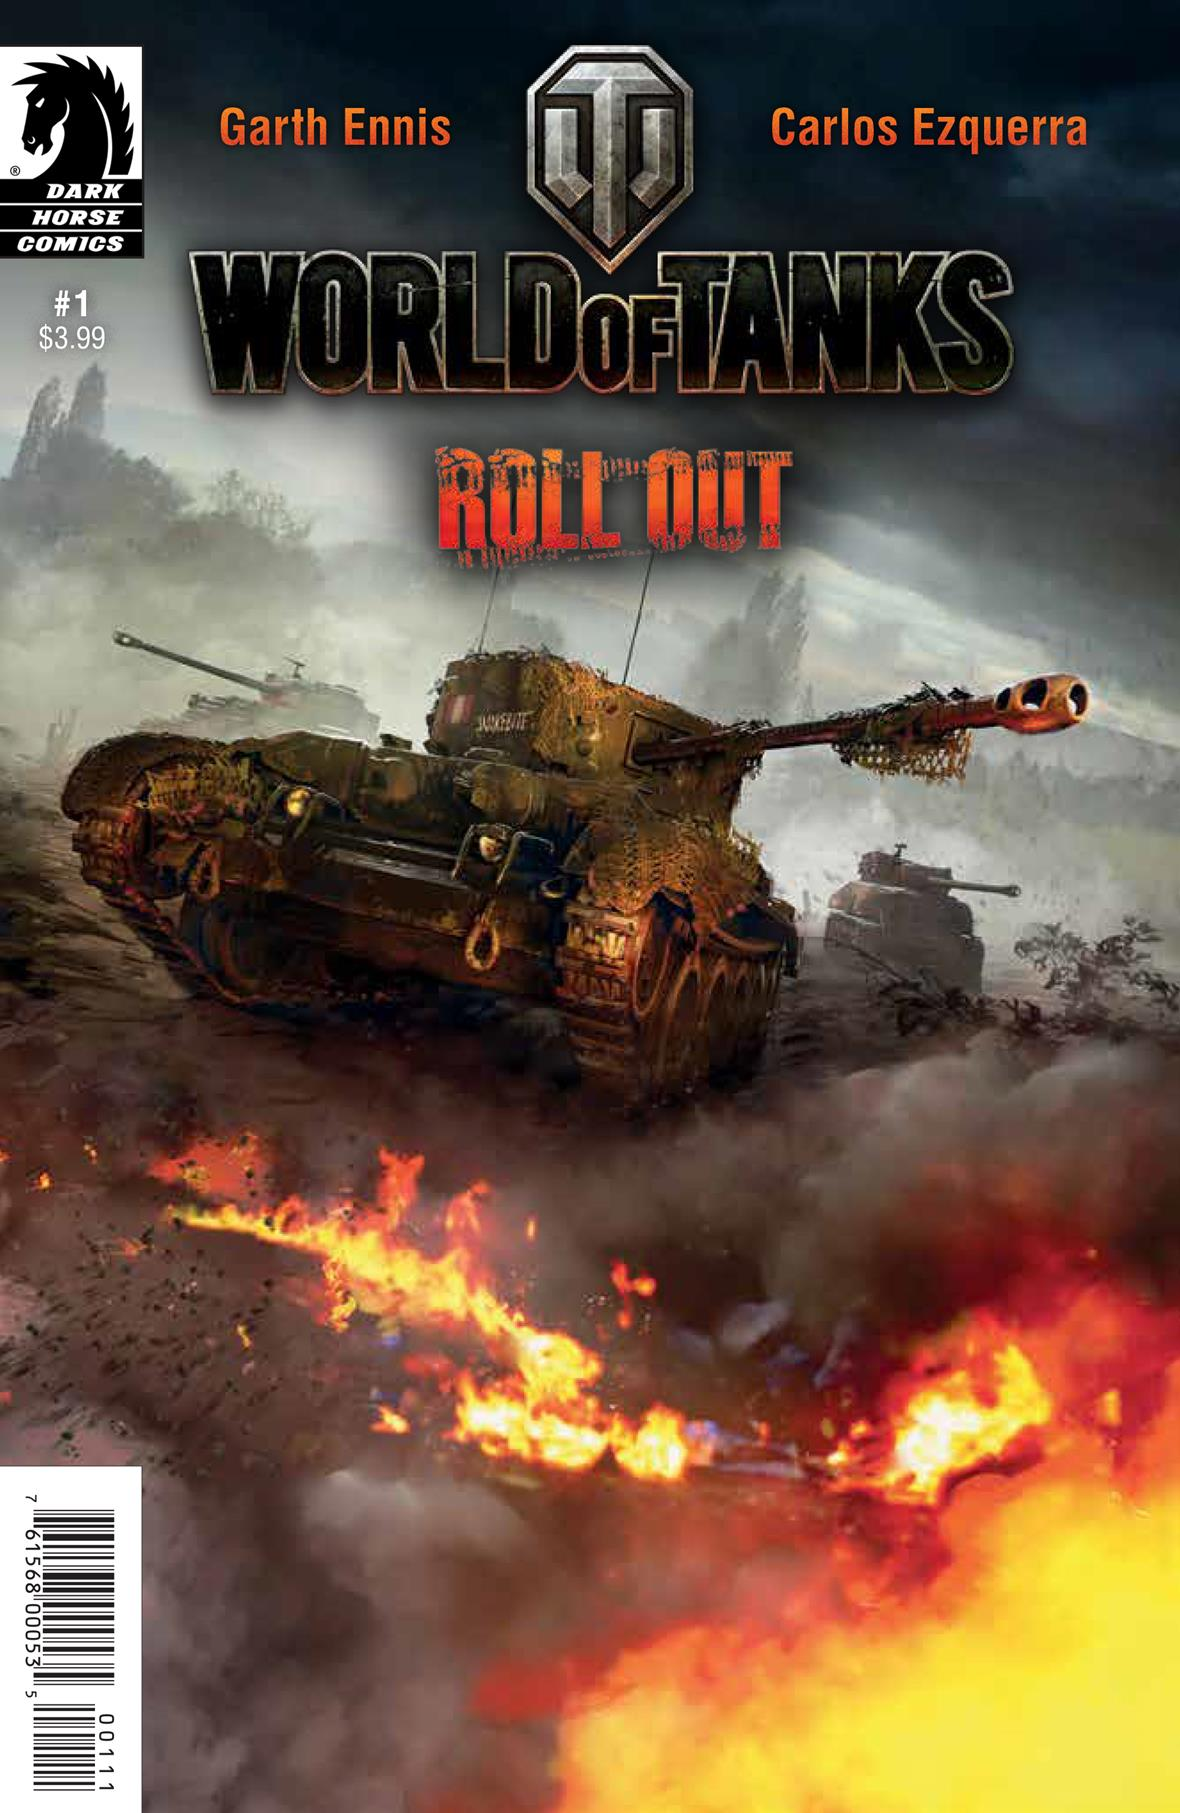 Wargaming and dark horse comics form an alliance to publish epic wargaming and dark horse comics form an alliance to publish epic world of tanks roll out series publicscrutiny Image collections